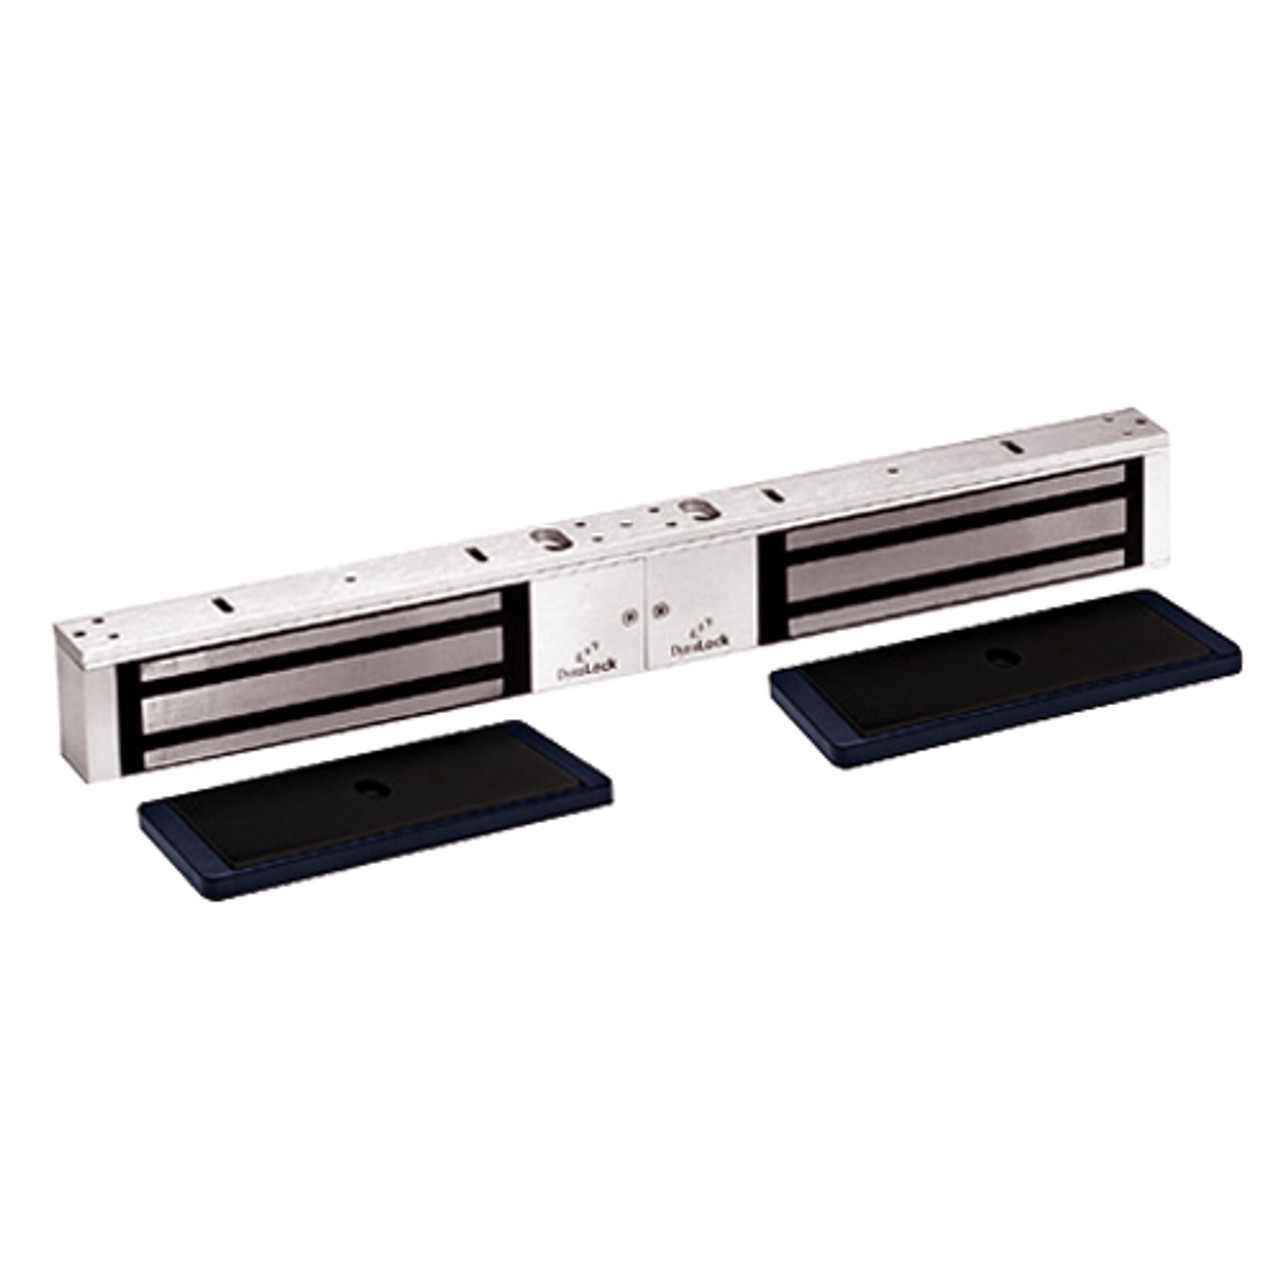 2022-US28-DSM2 DynaLock 2000 Series 1200 LB Holding Force Double Electromagnetic Lock with Door Status Switch in Satin Aluminum